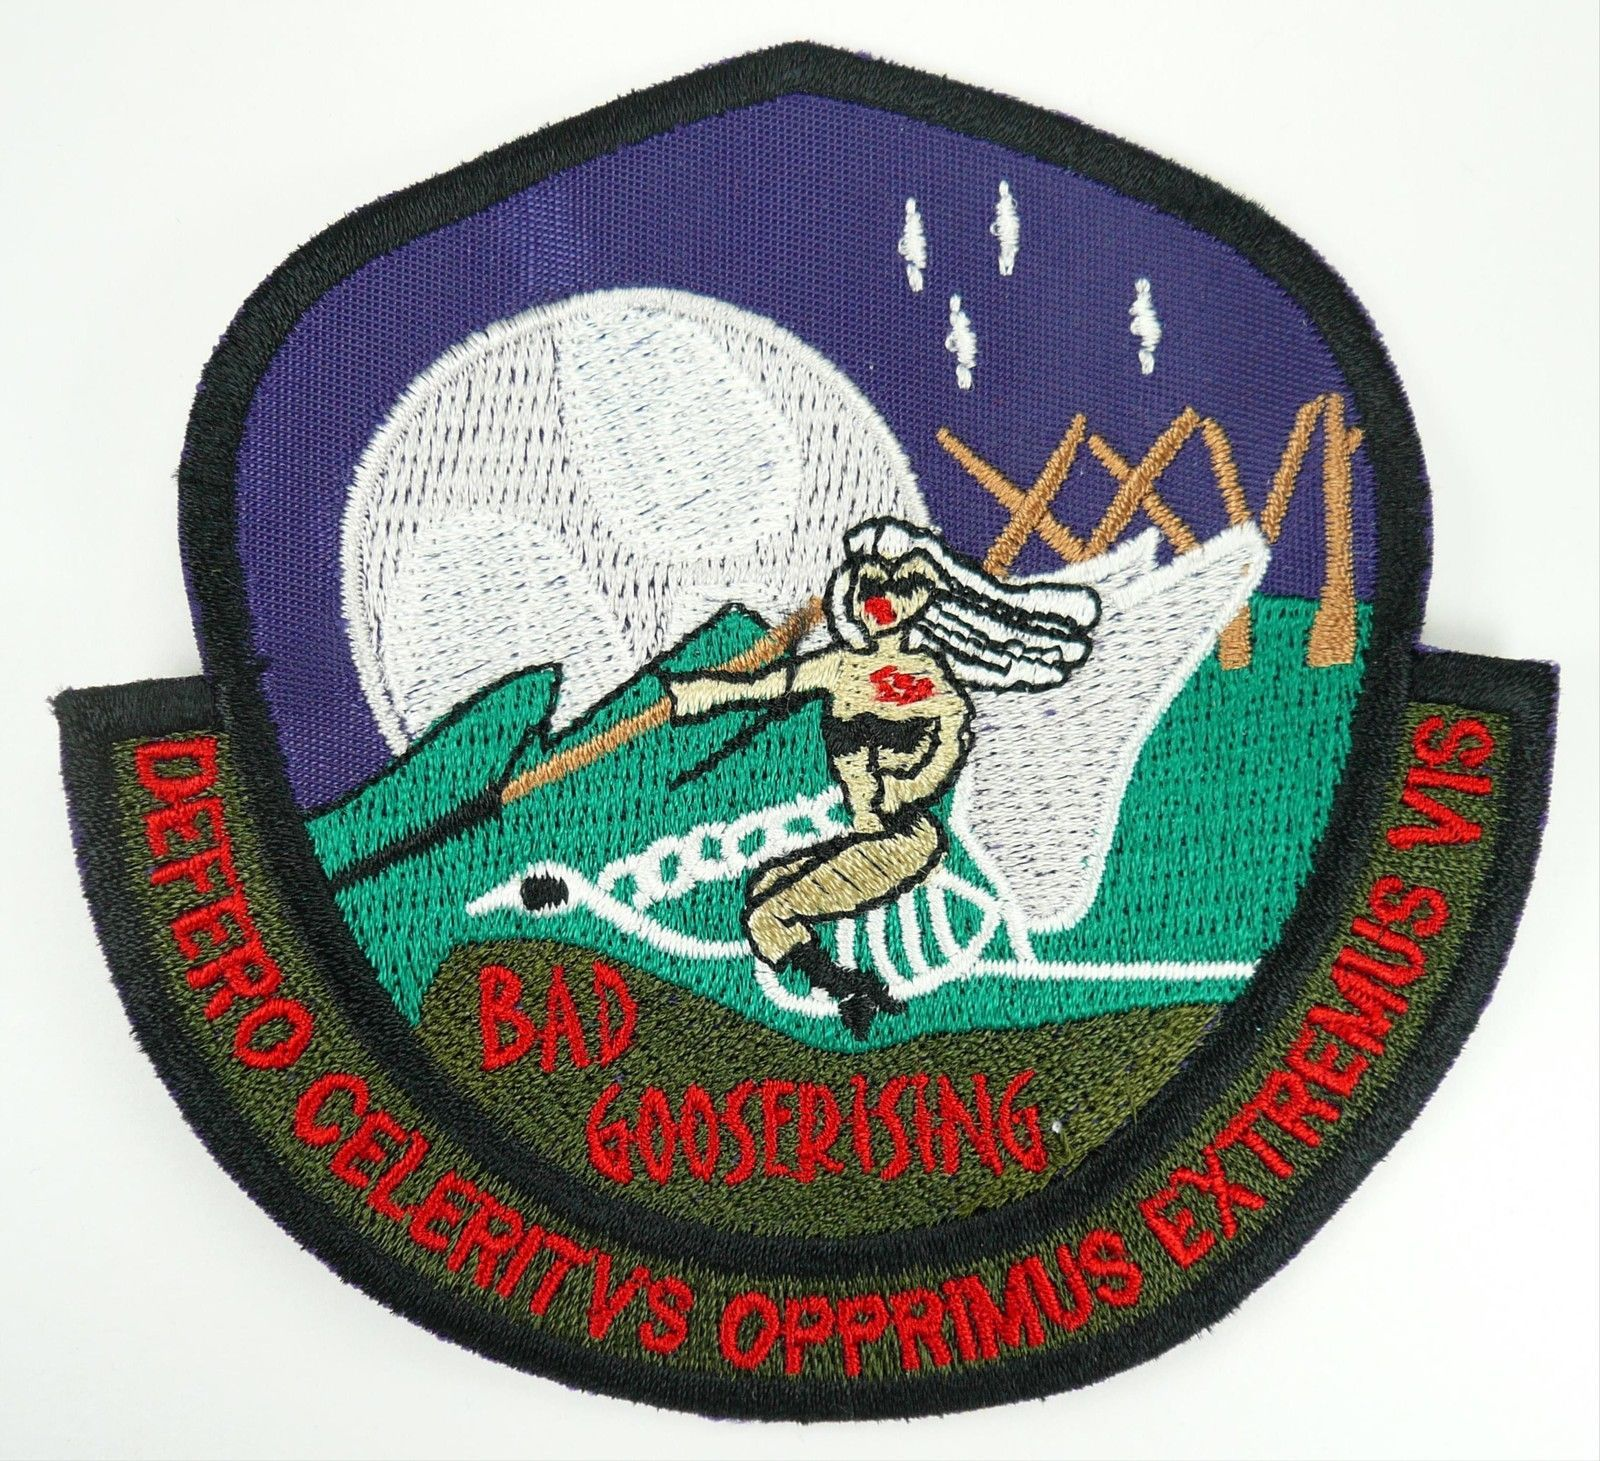 USAF 1st SOS SPECIAL OPERATIONS SQUADRON GOOSE26 PATCH